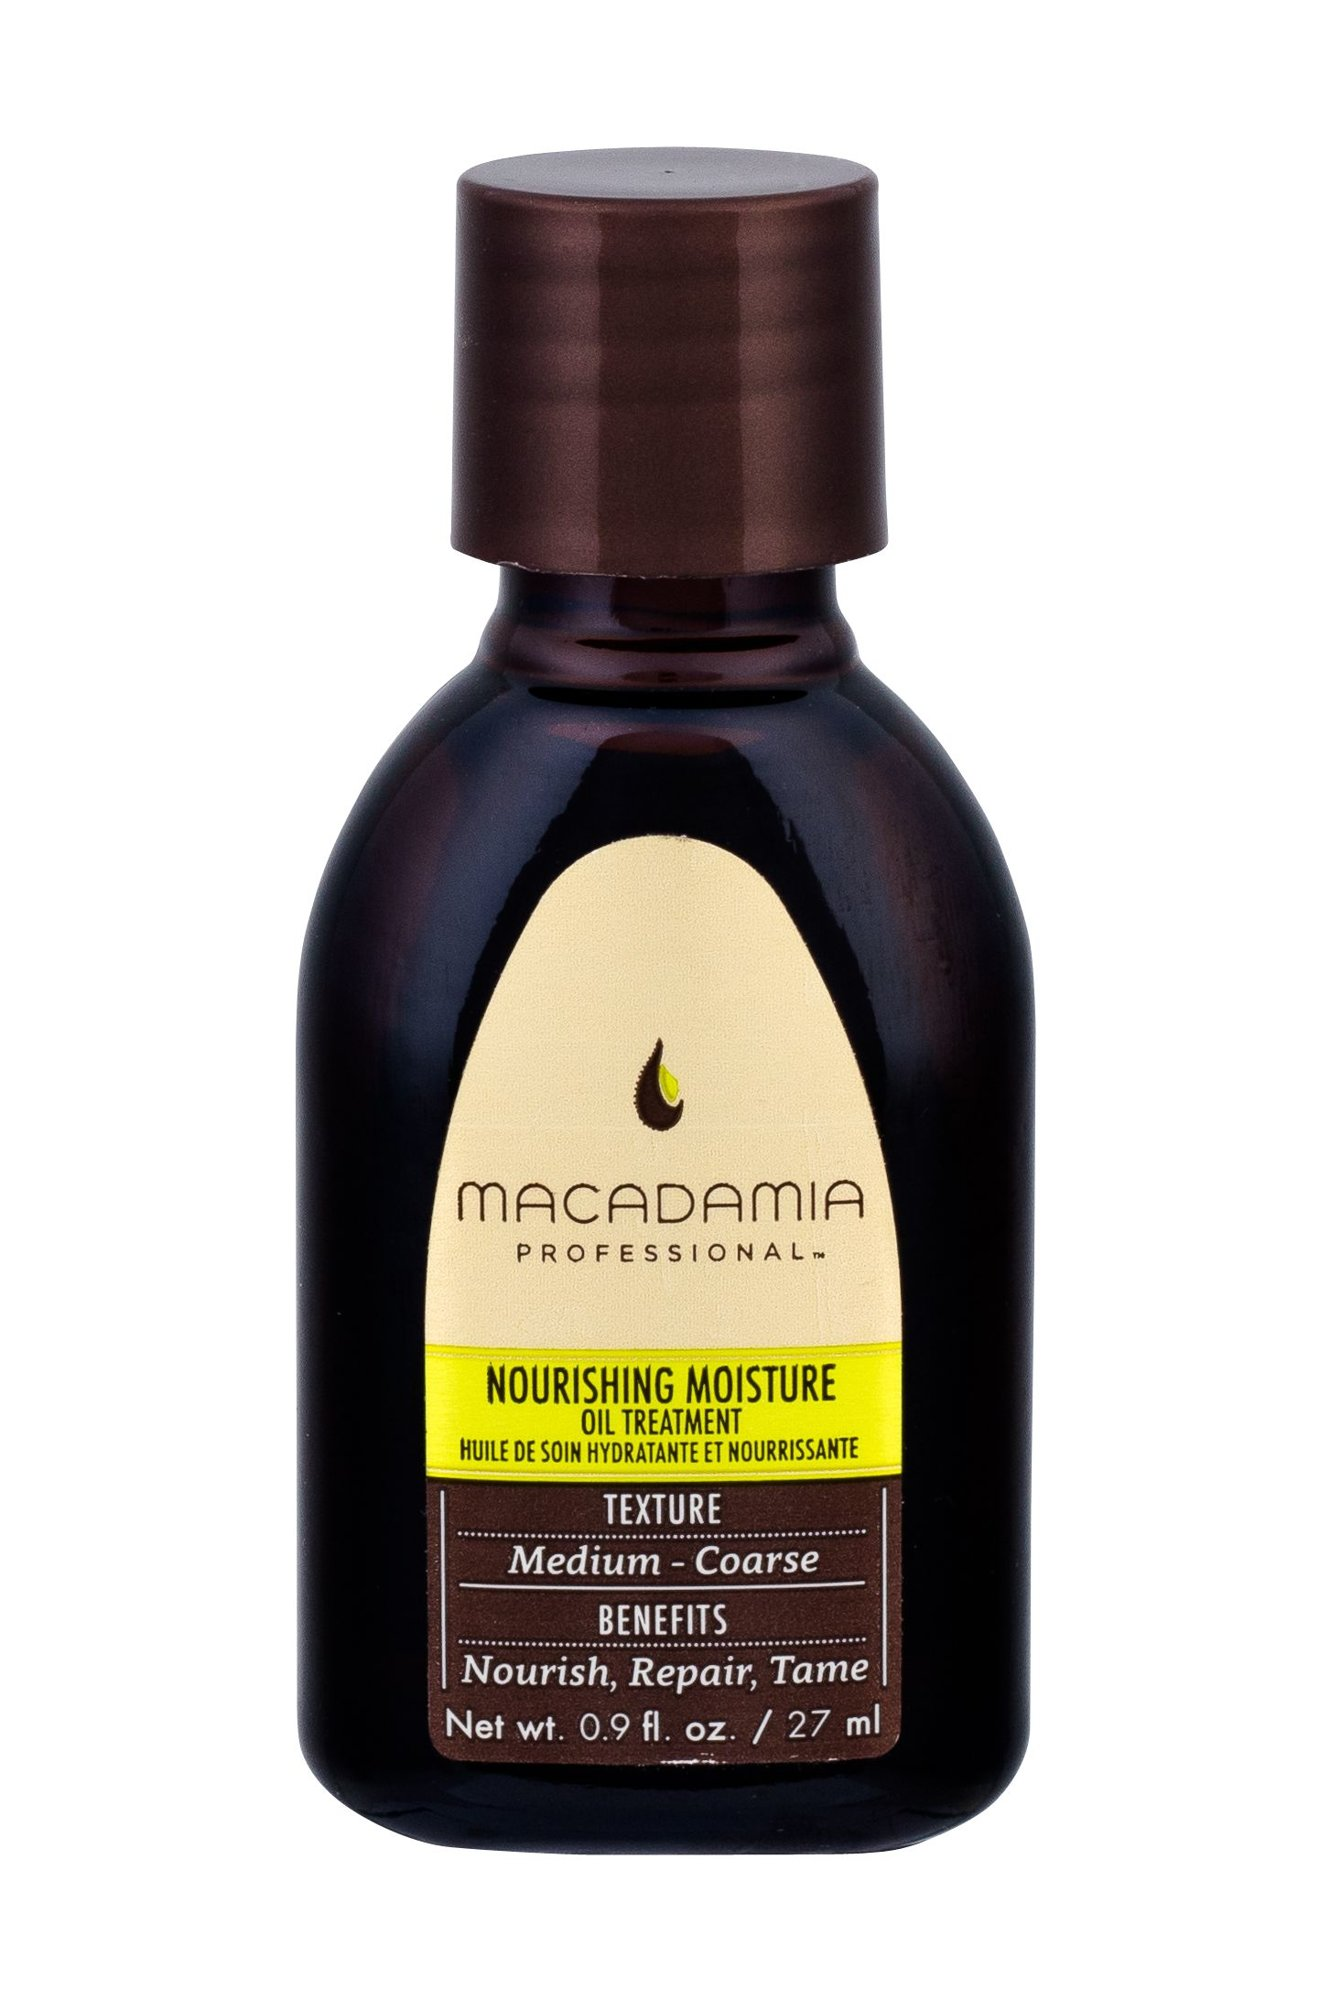 Macadamia Professional Nourishing Moisture Hair Oils and Serum 27ml